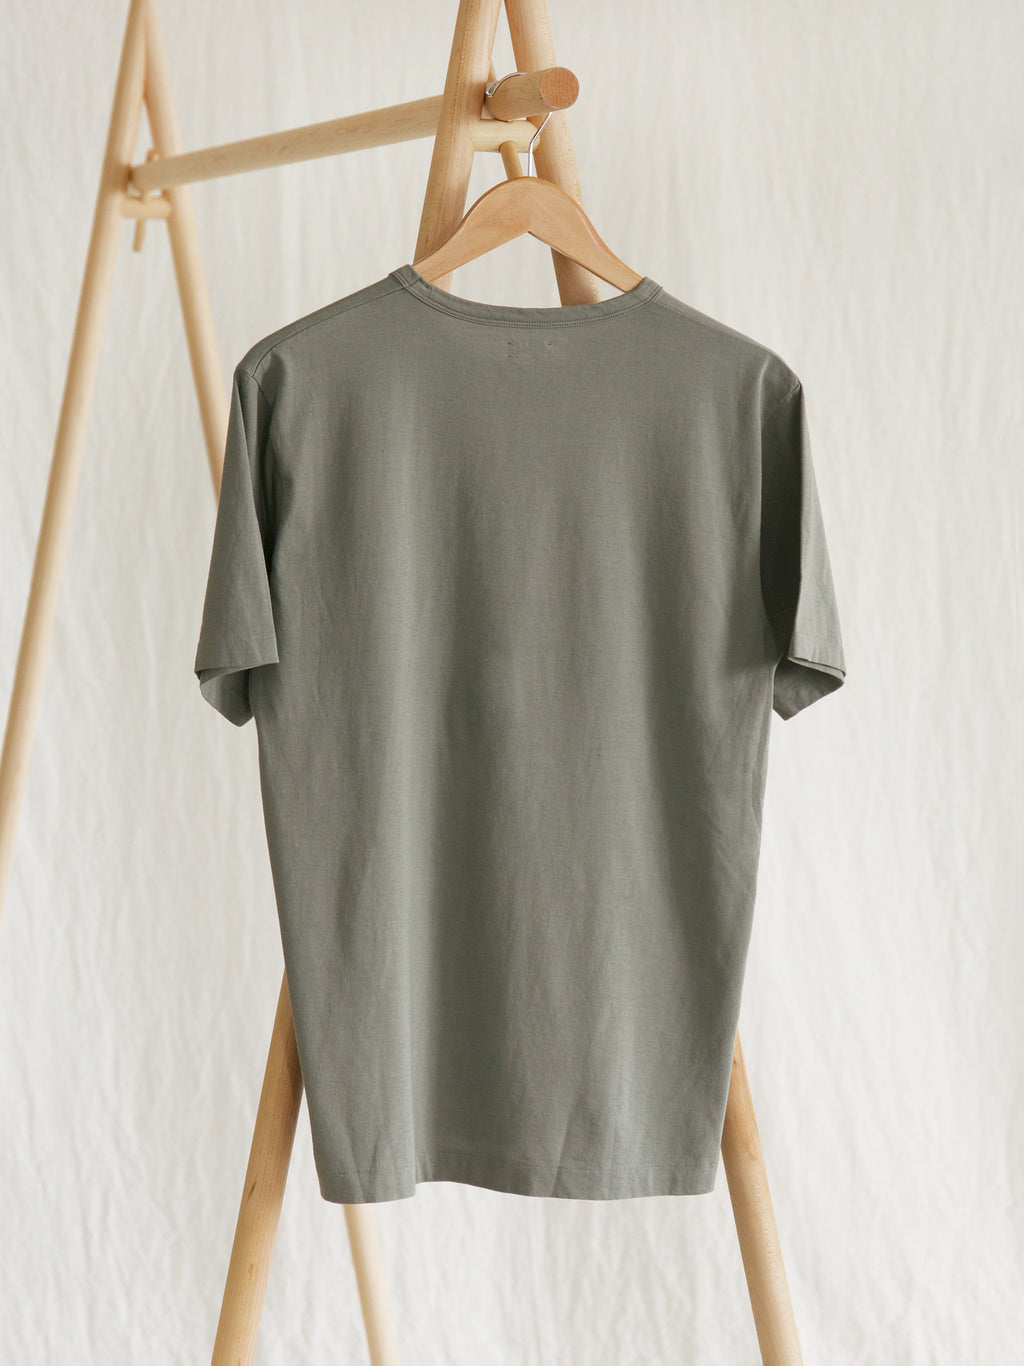 Namu Shop - Phlannel Light Suvin Cotton T-Shirt - Leaf Green